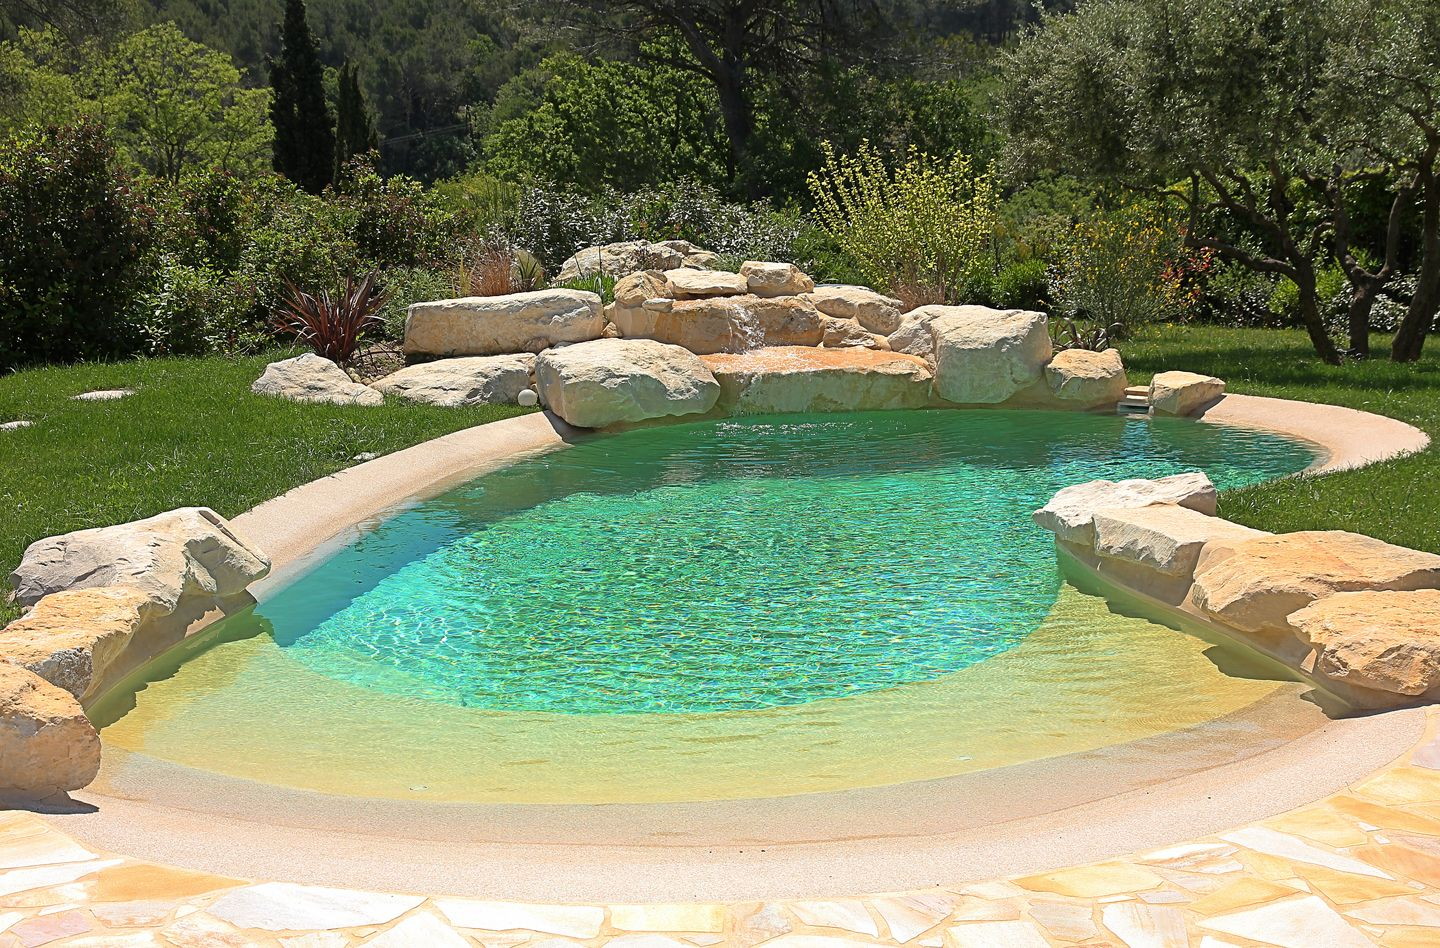 Piscine Iloe Small Beach Entry Pool With Rock Surrounds Is Great For A Small